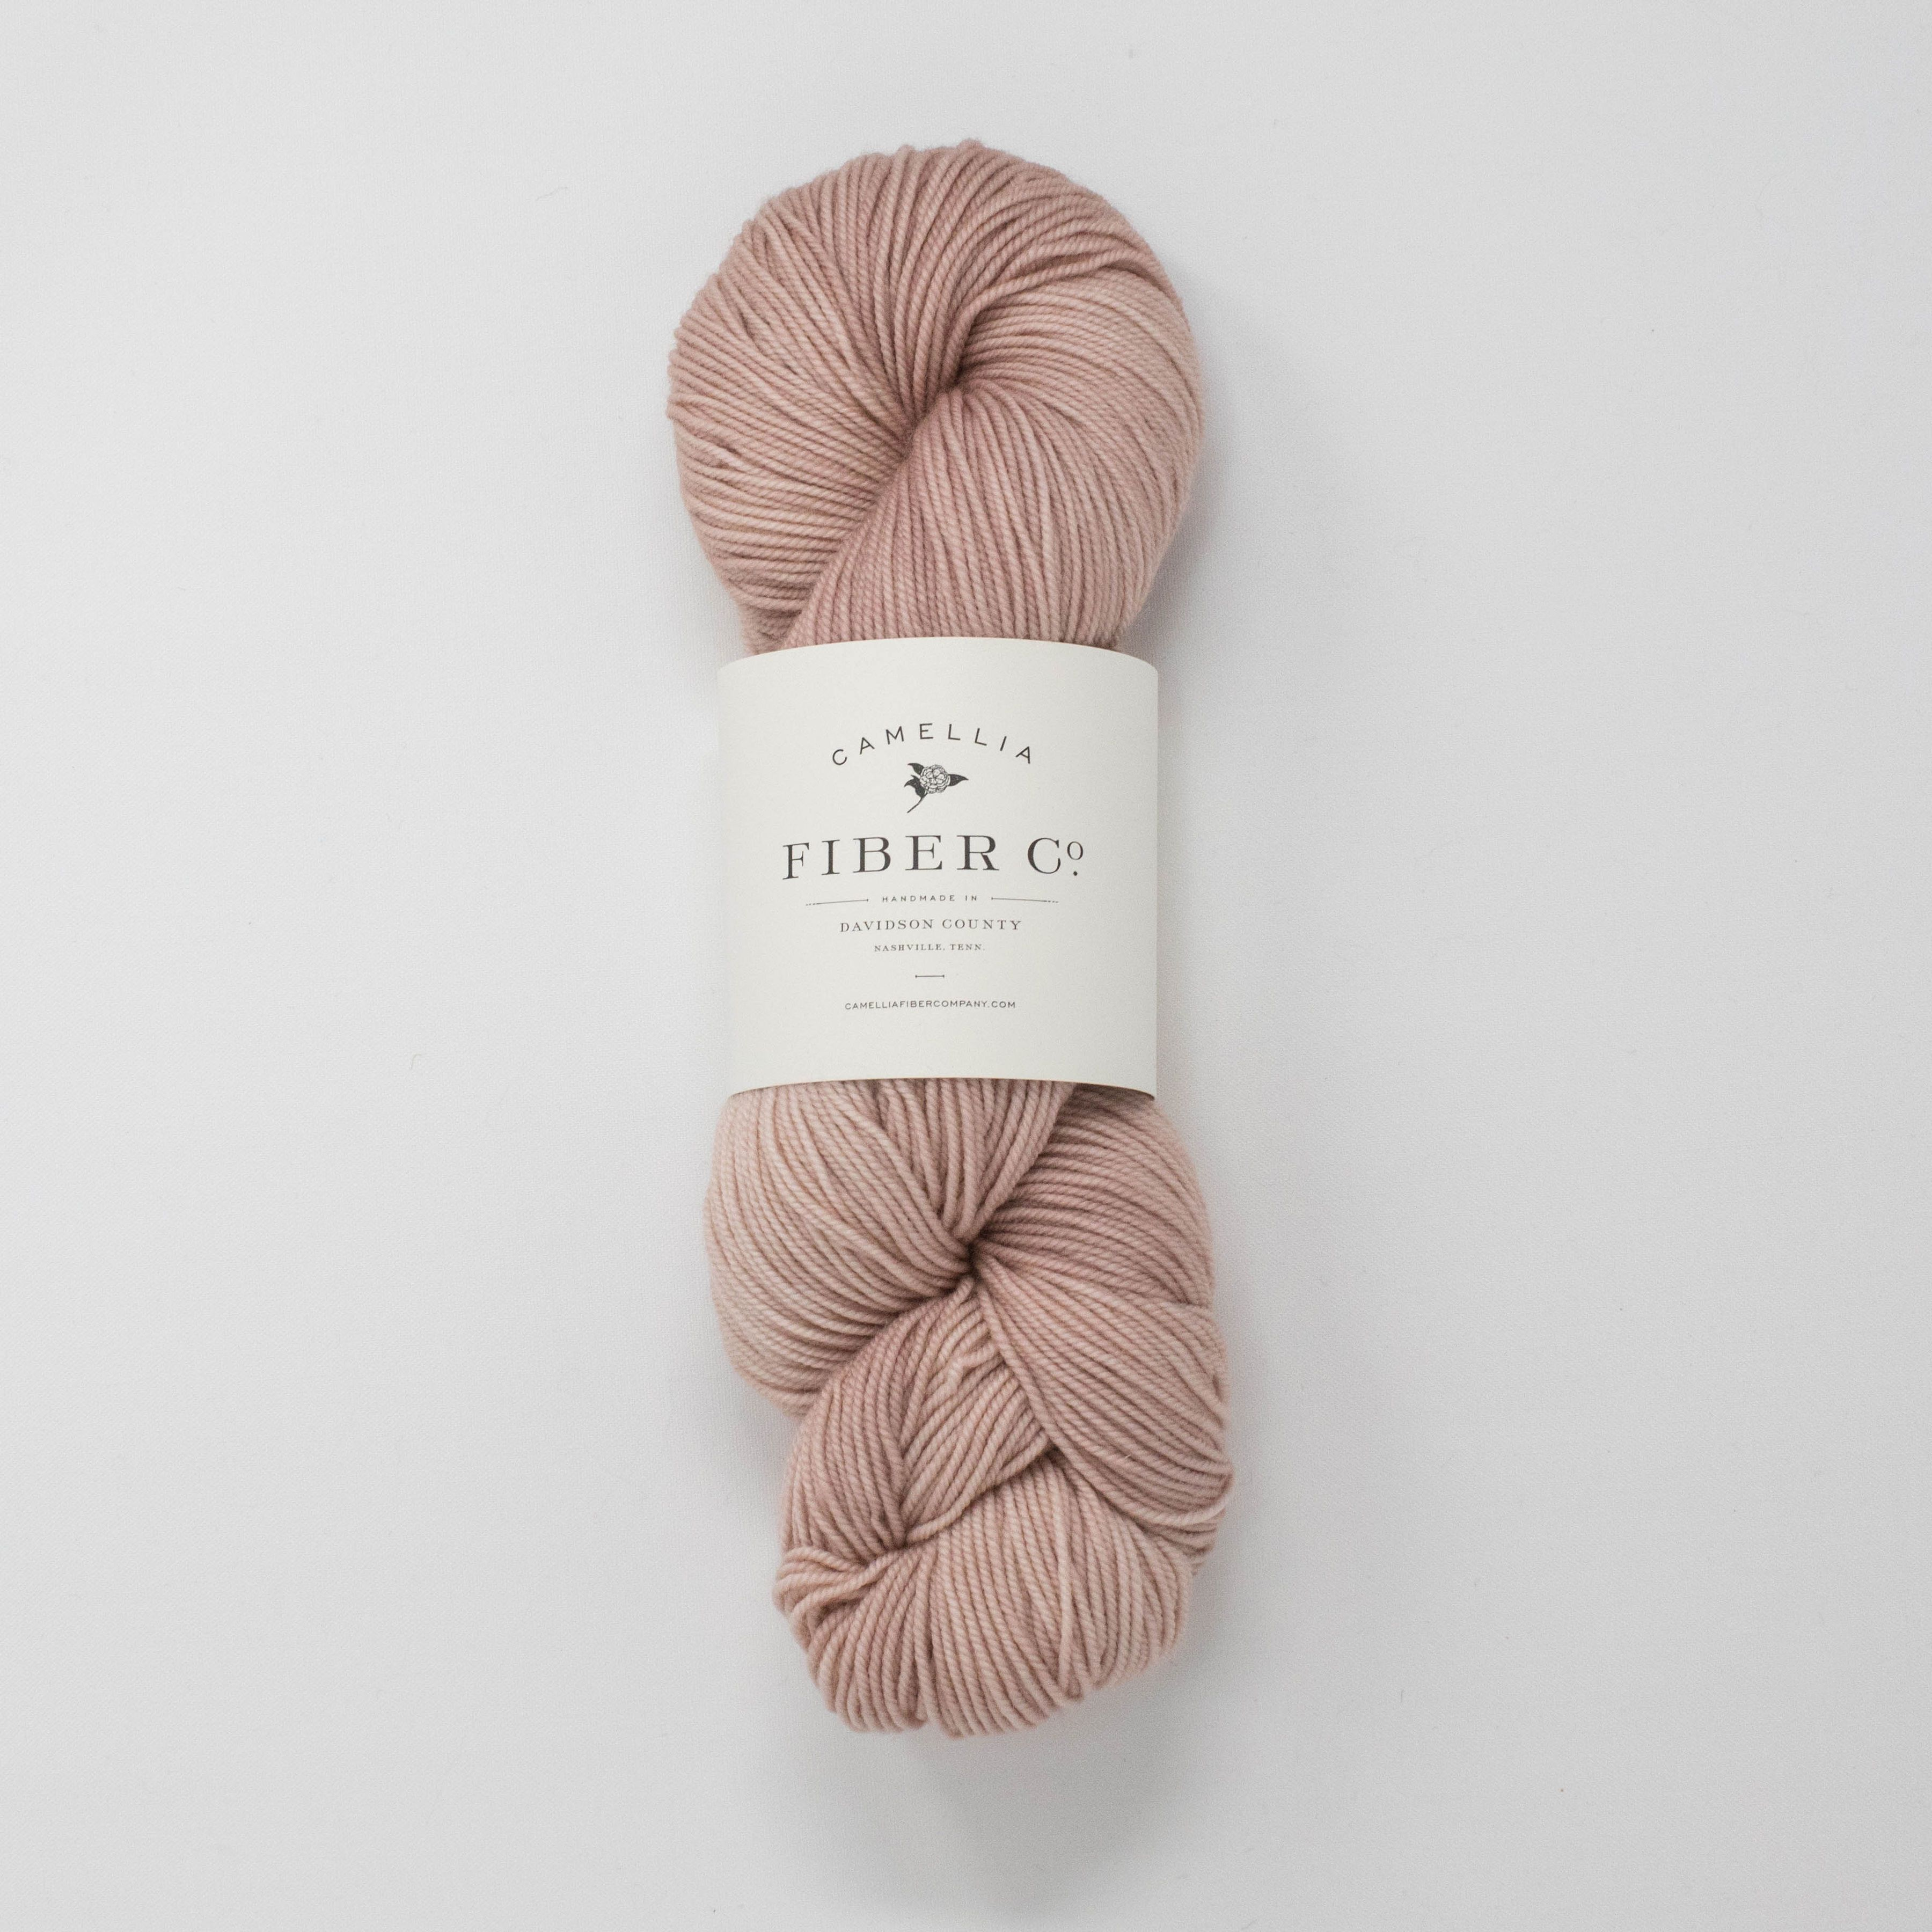 100% merino wool in a 3-ply sport weight yarn. This is our go-to yarn for babies and children's items, as it is warm, durable, and next-to-skin soft. It also makes the most wonderful cozy socks! Yards: 325 Weight: 3.5 oz Recommended needle size: US 4-5, 3.5-3.75mm